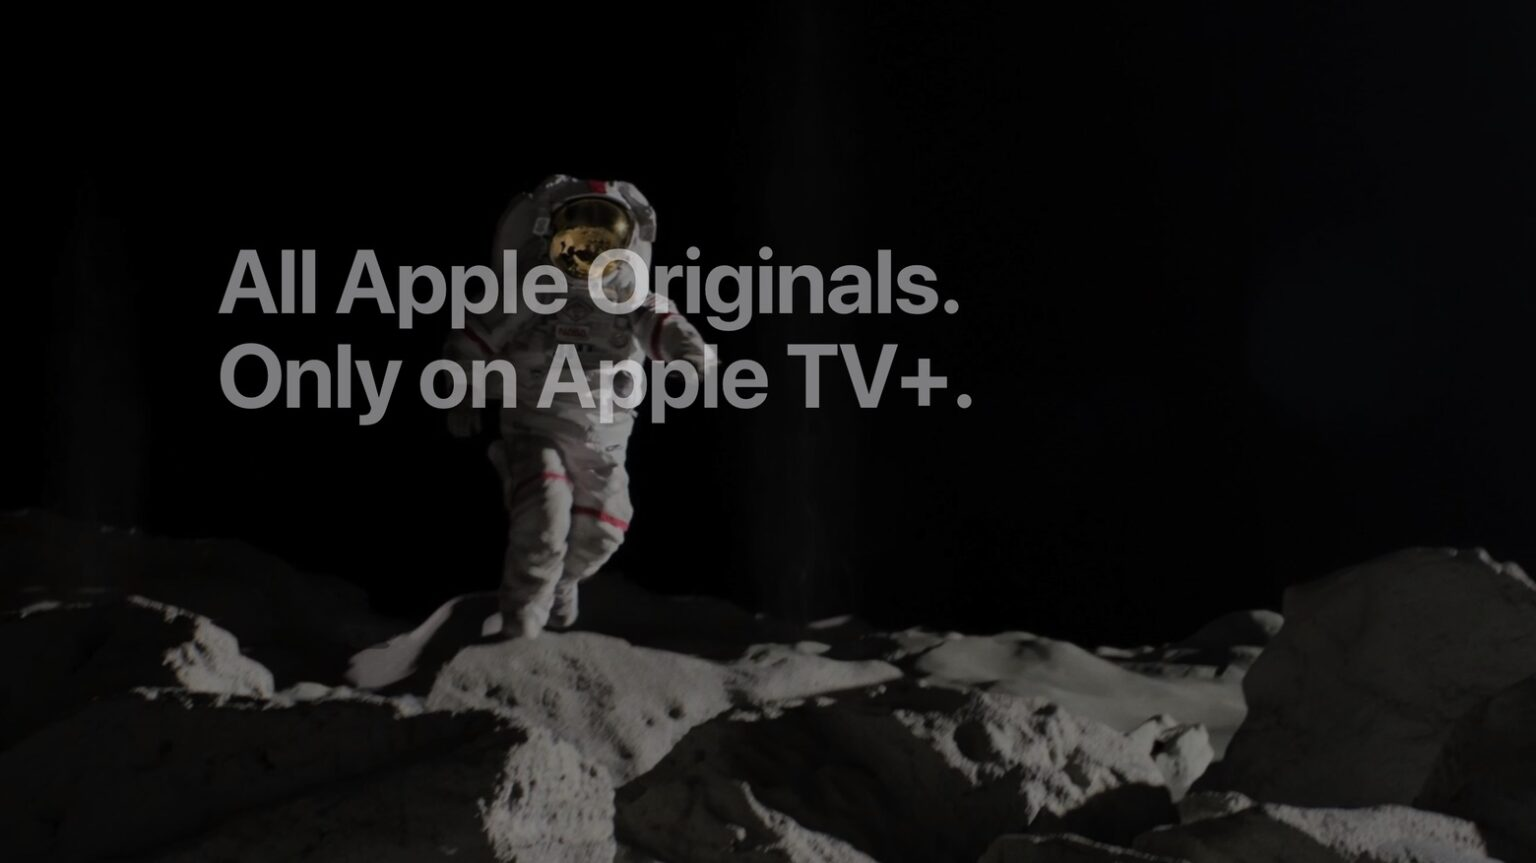 Apple TV+ might premiere new show or movie every week in 2022